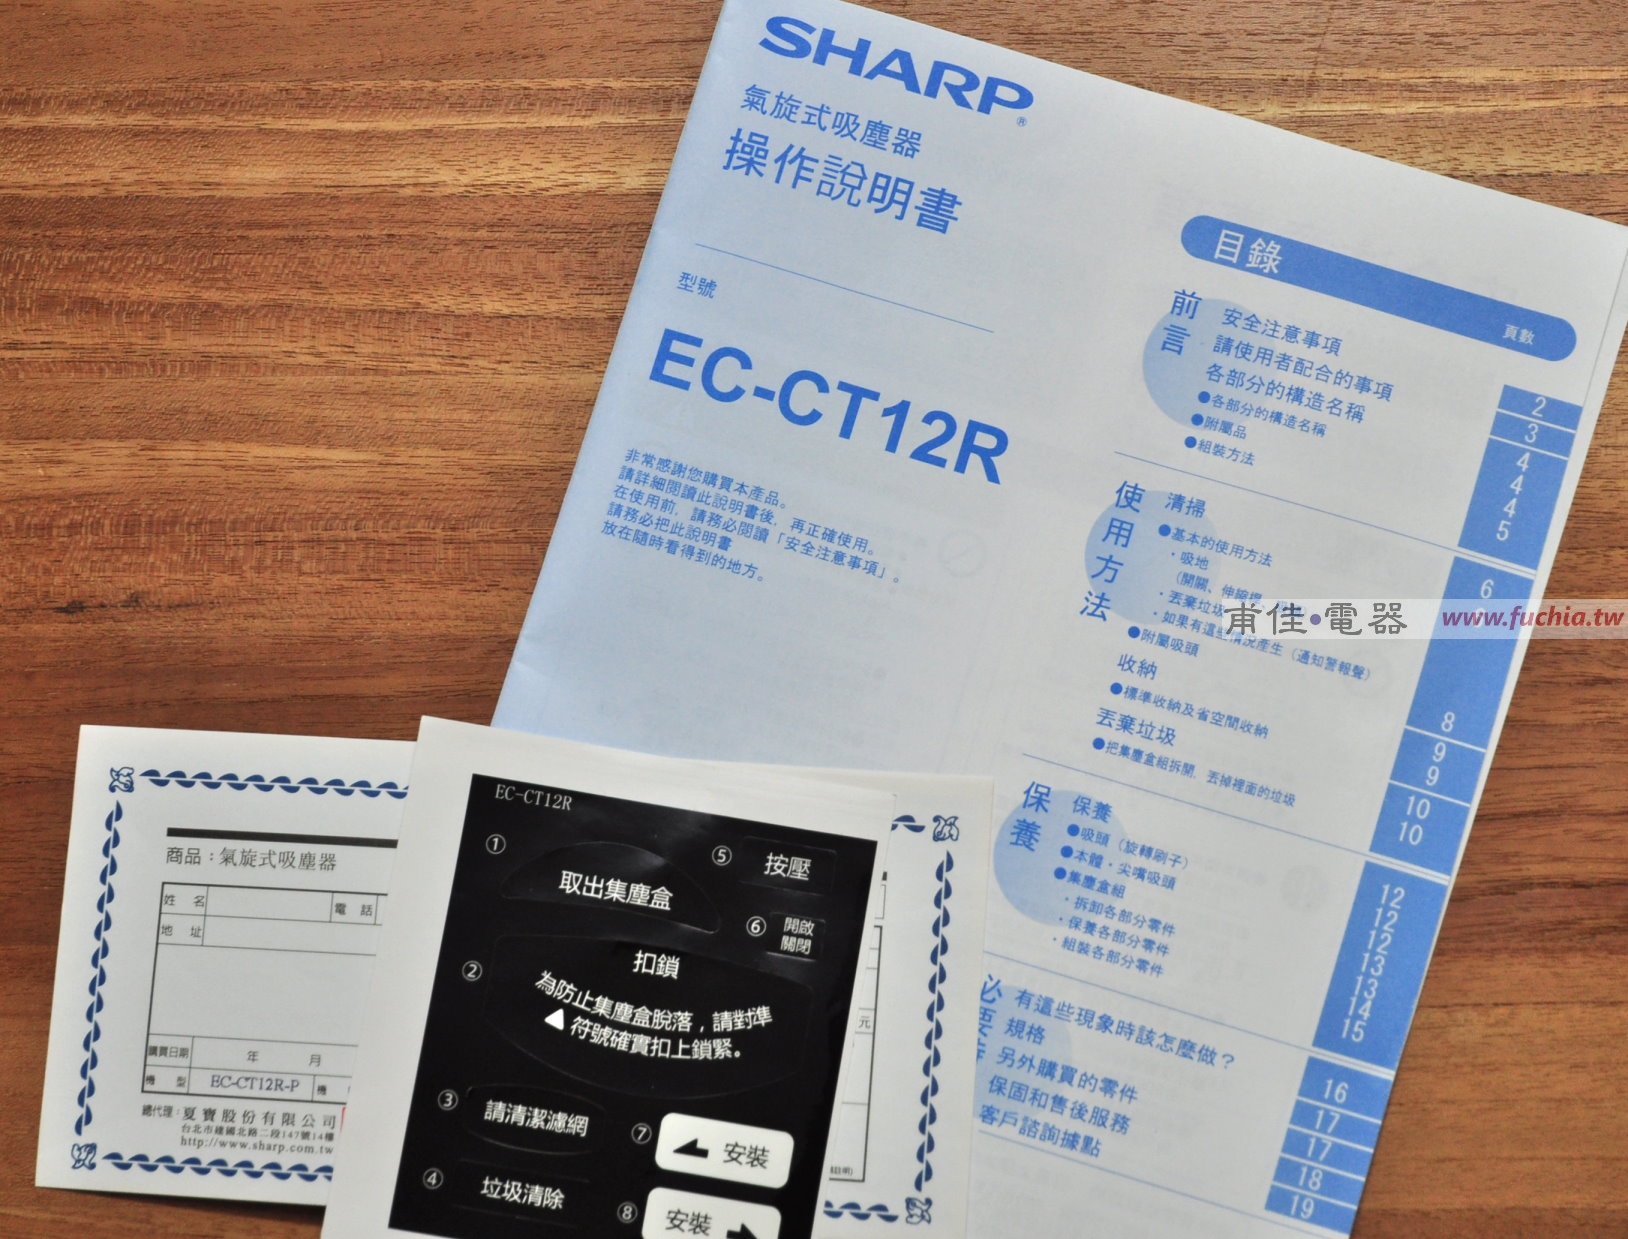 SHARP EC-CT12R